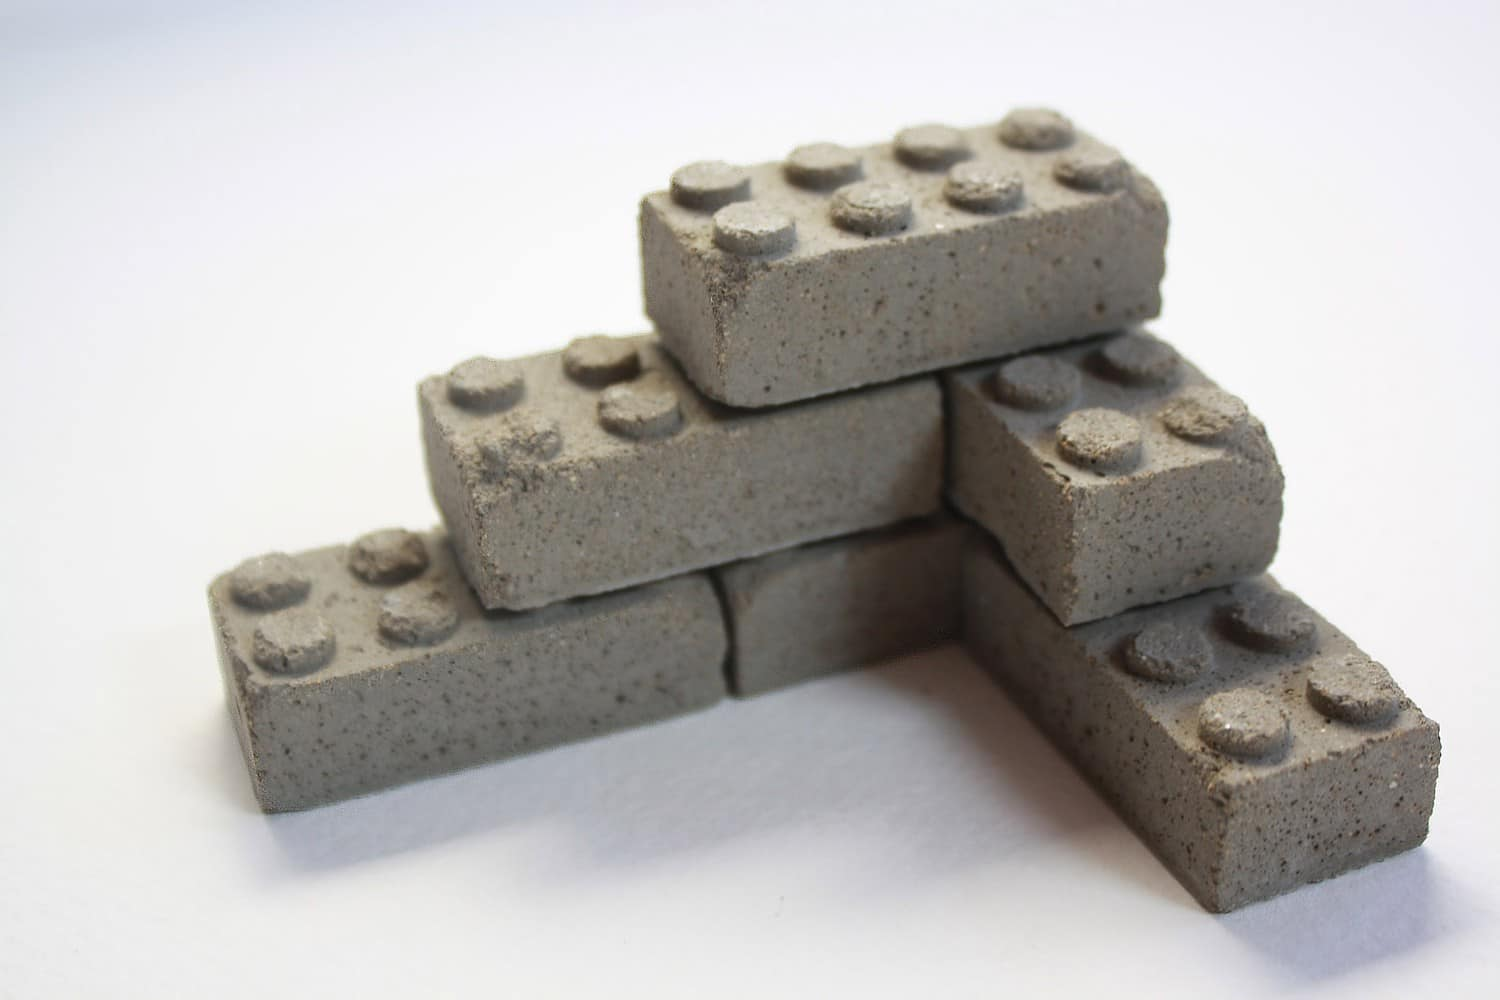 Real Concrete Lego Blocks Make Your Builds Realistic | Bit ...